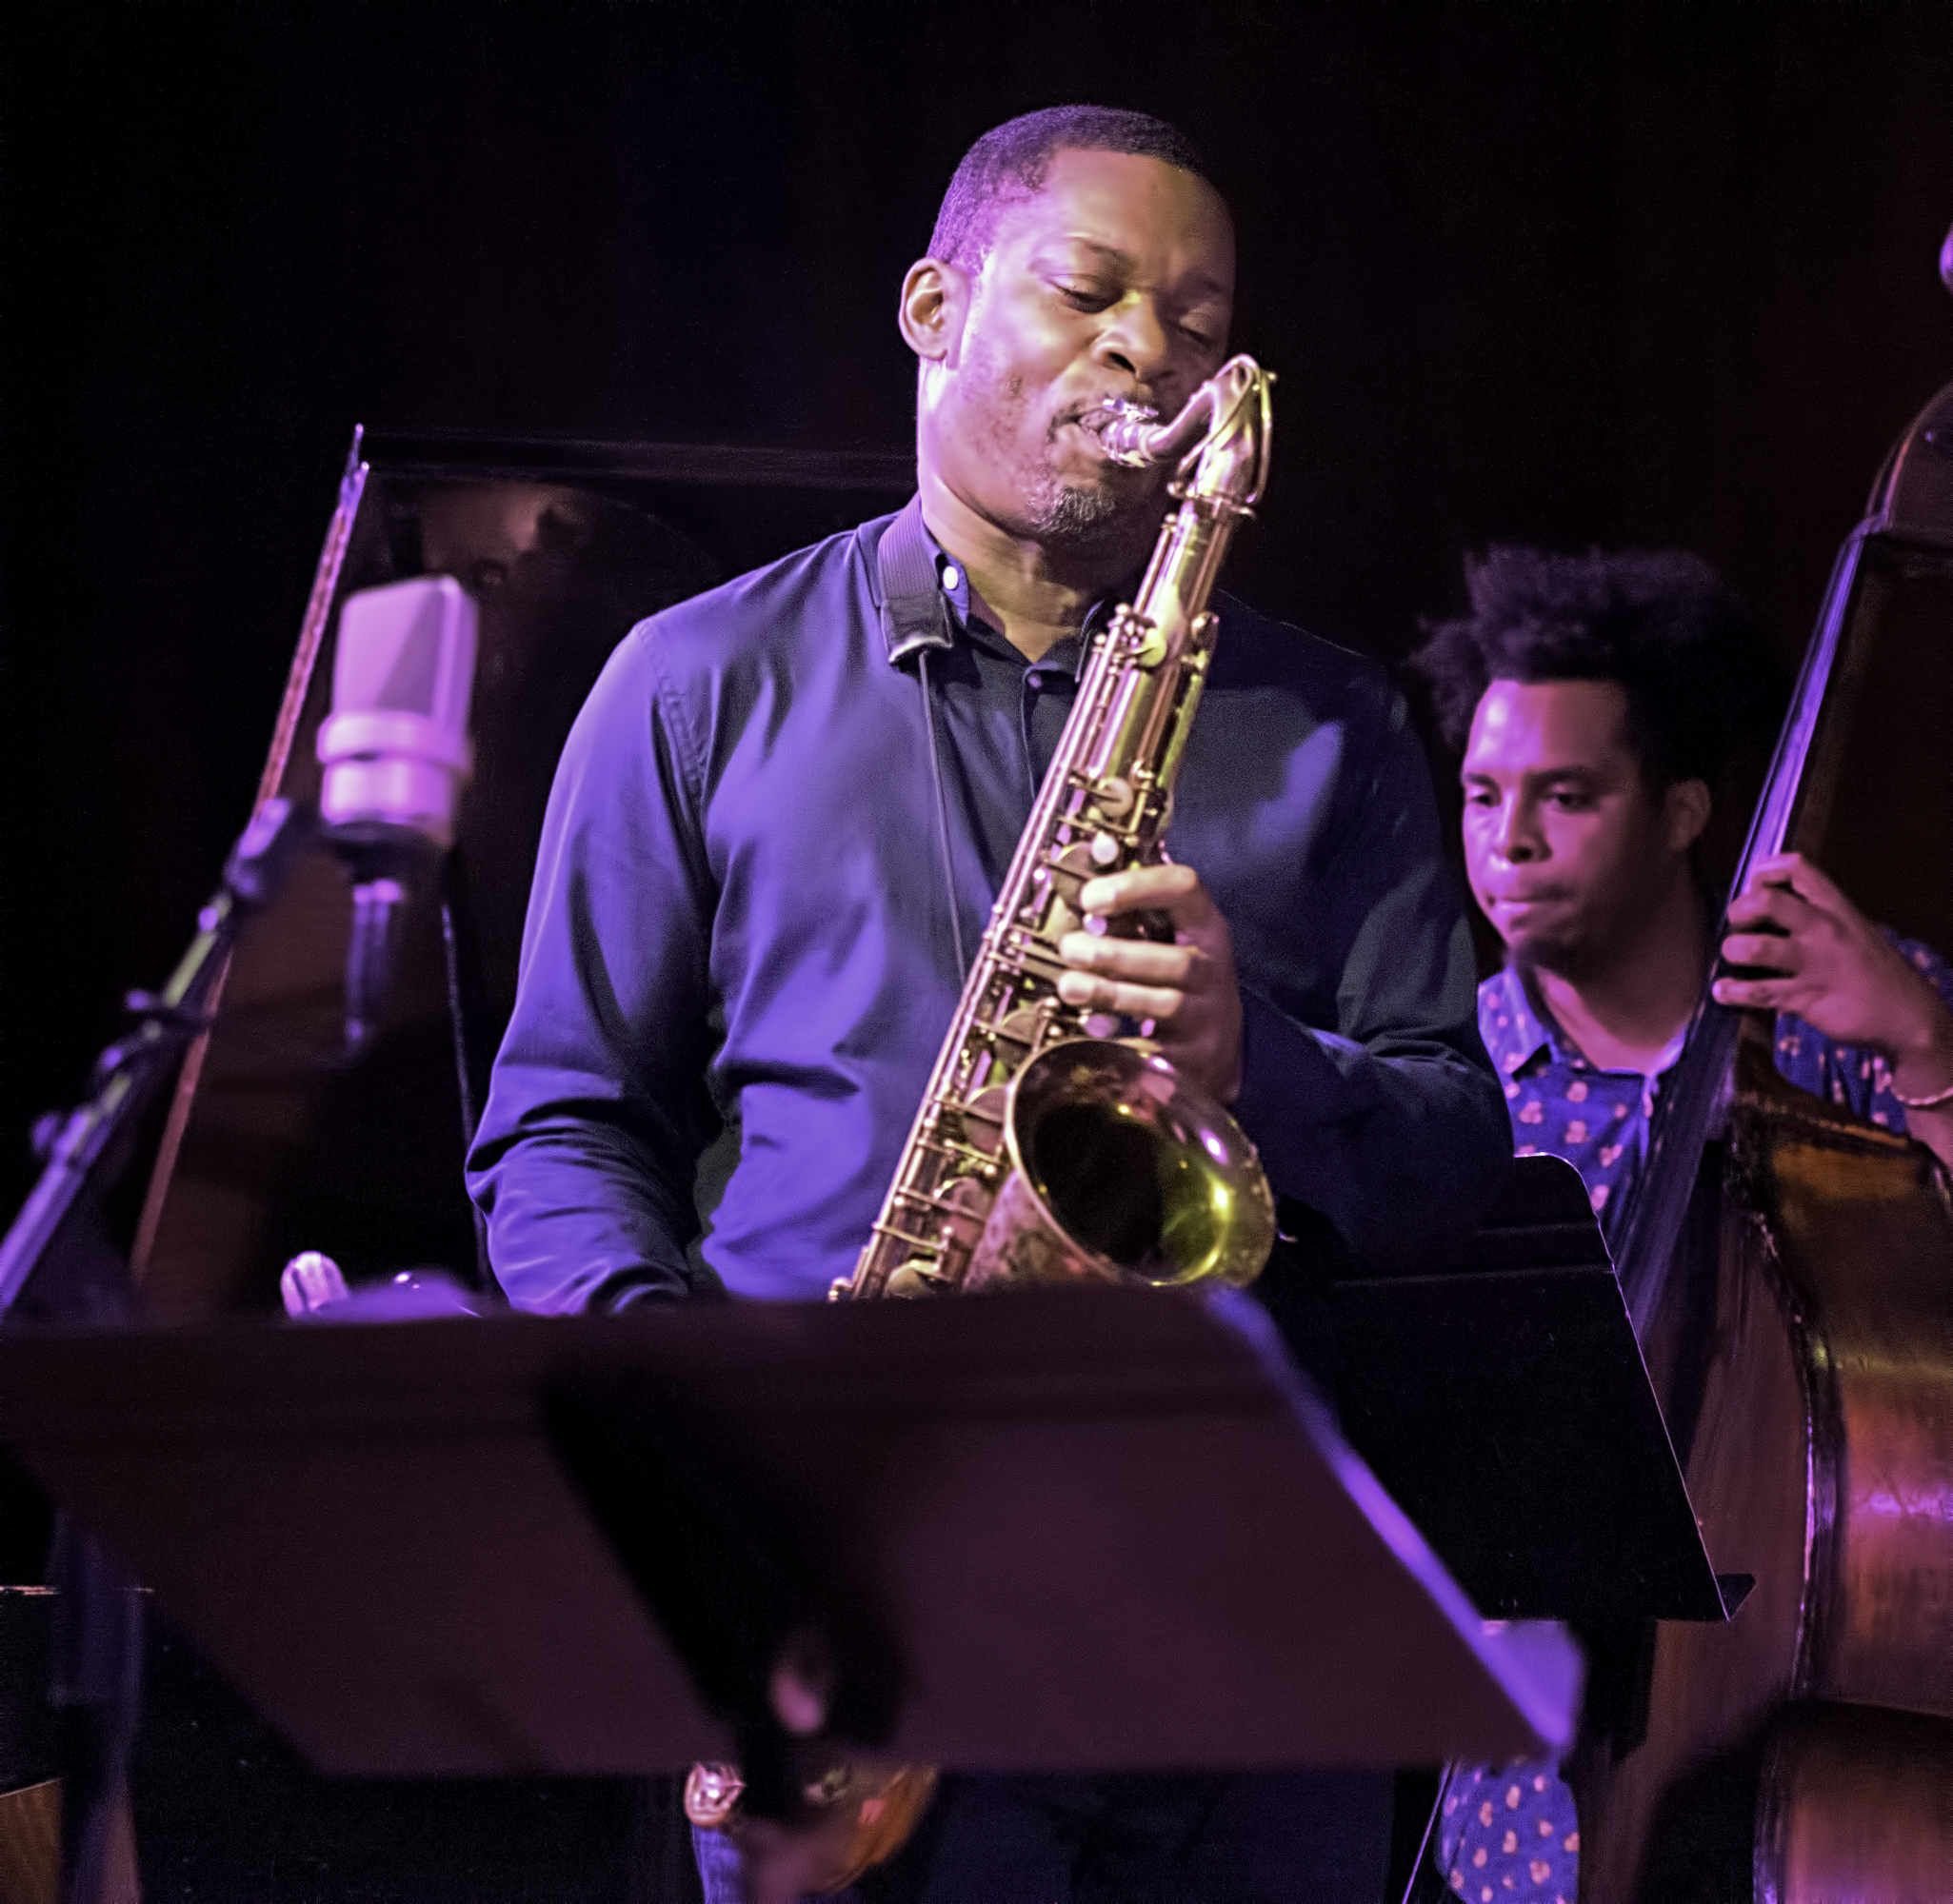 Ravi Coltrane and Rashaan Carter with Universal Consciousness: Melodic Meditations of Alice Coltrane at the Jazz Gallery